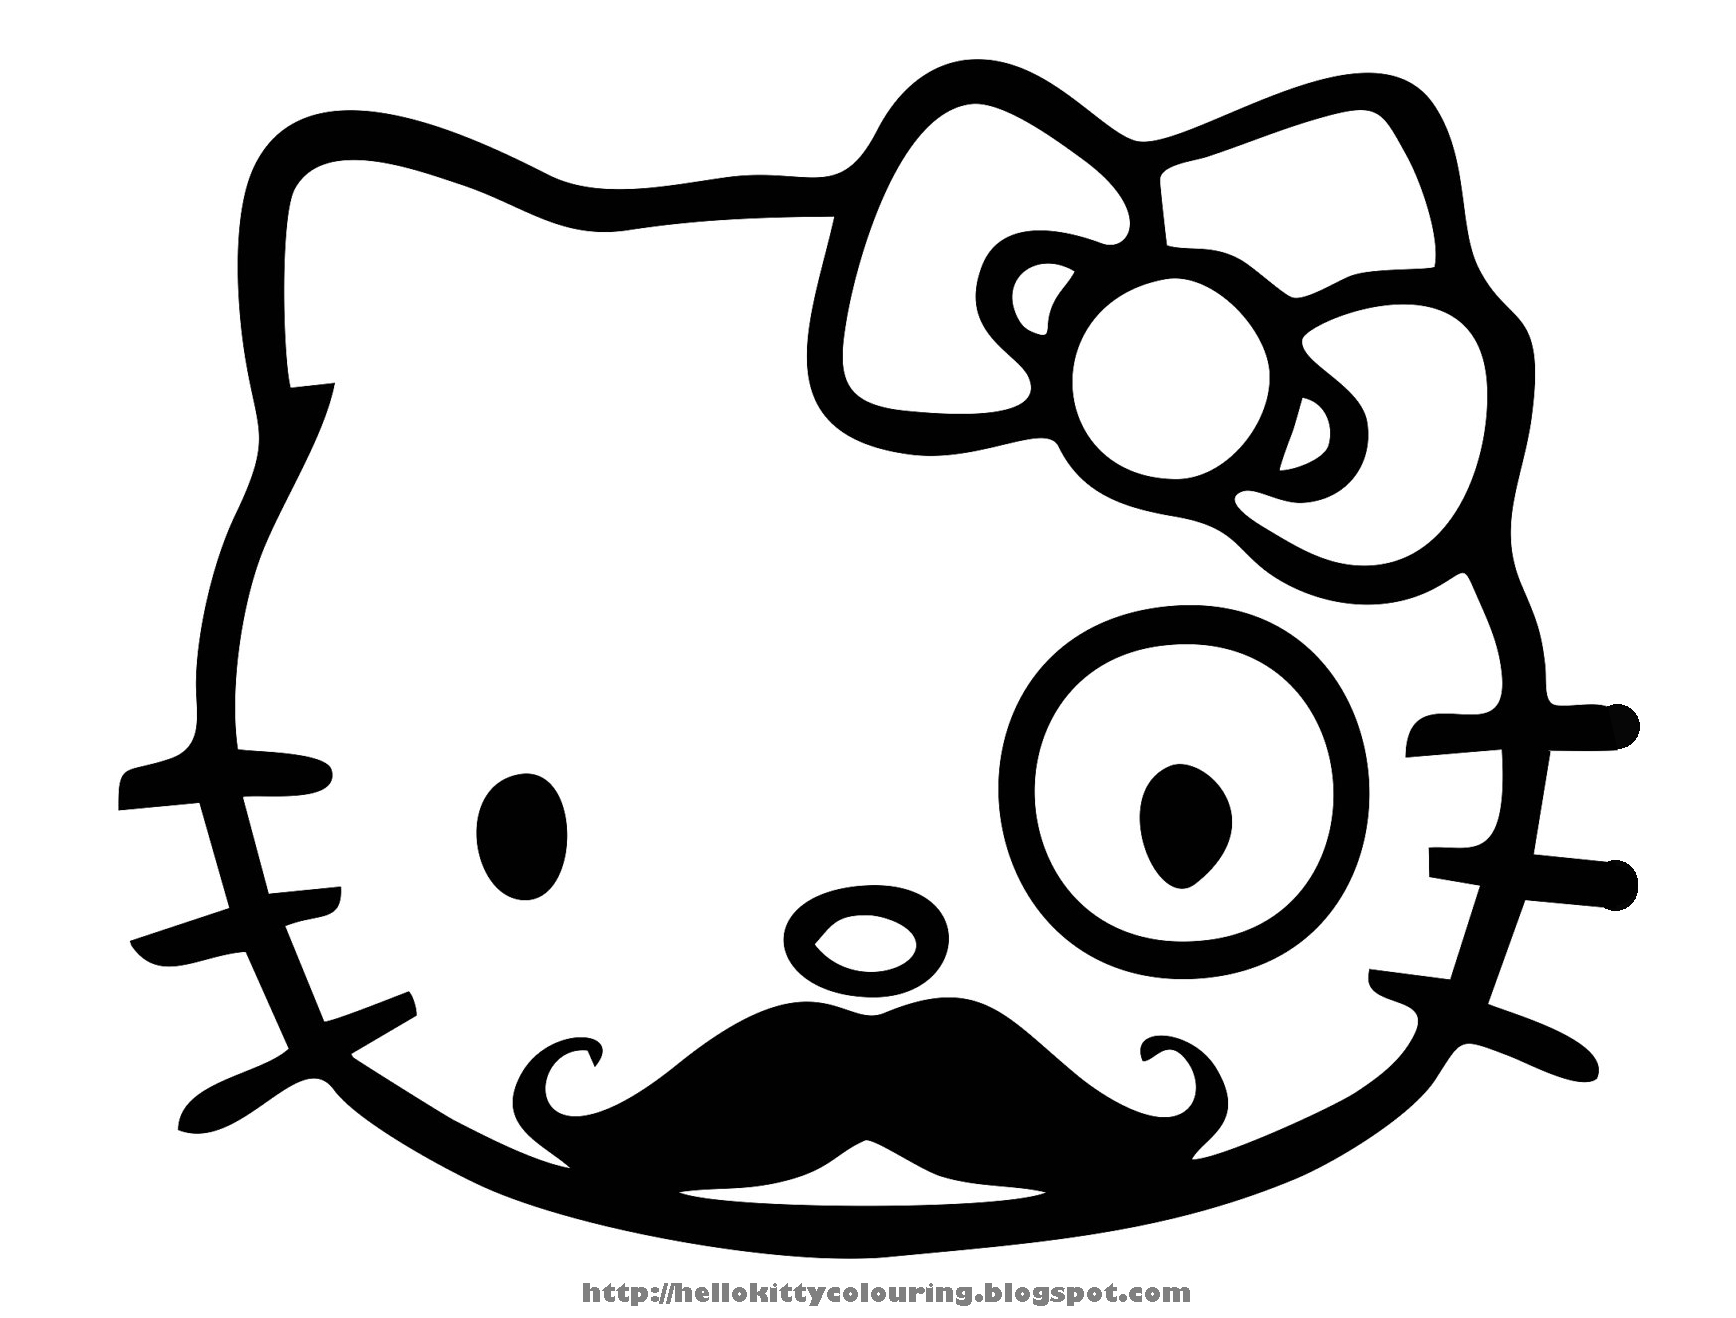 Large hello kitty coloring pages download and print for free for Coloring pages of hello kitty